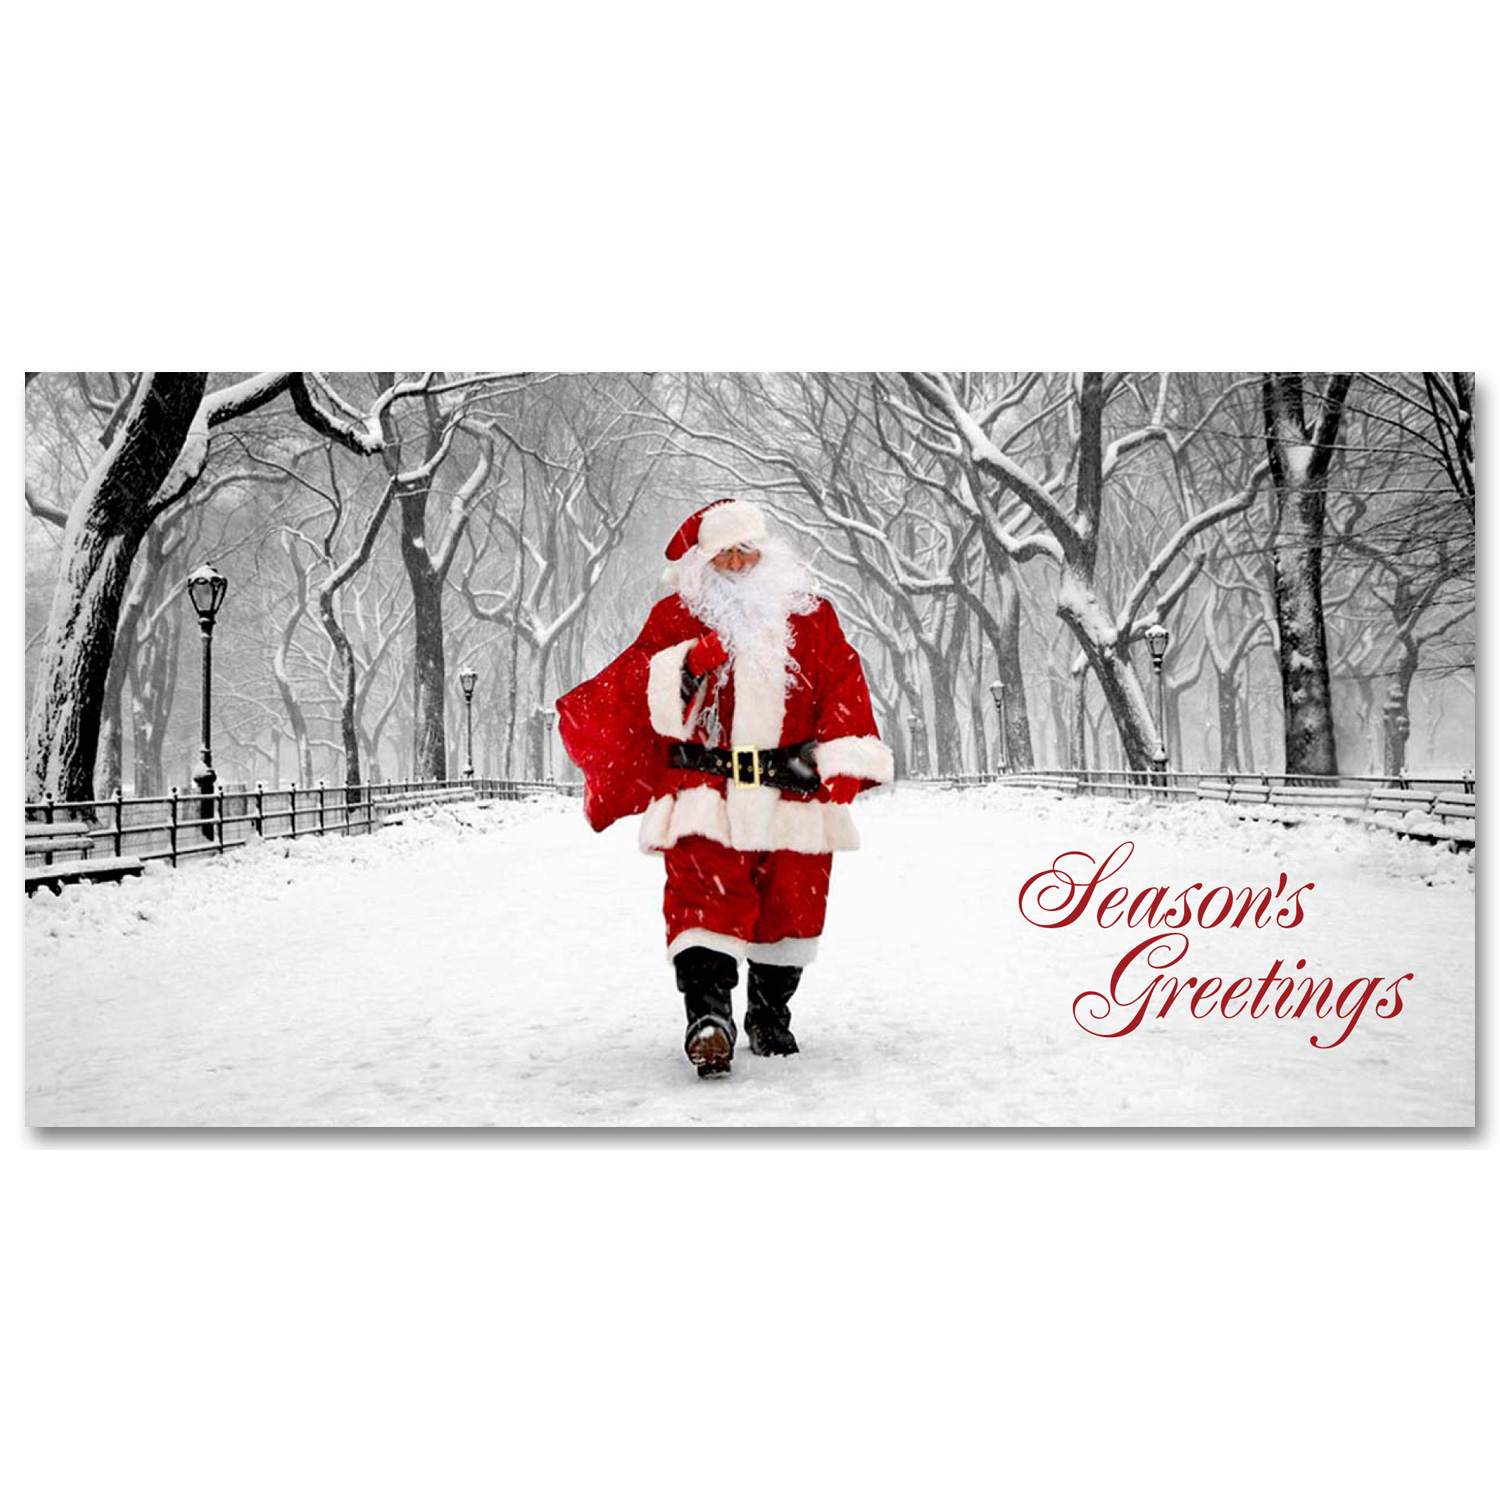 AdoramaPix Archives - NY Christmas Gifts